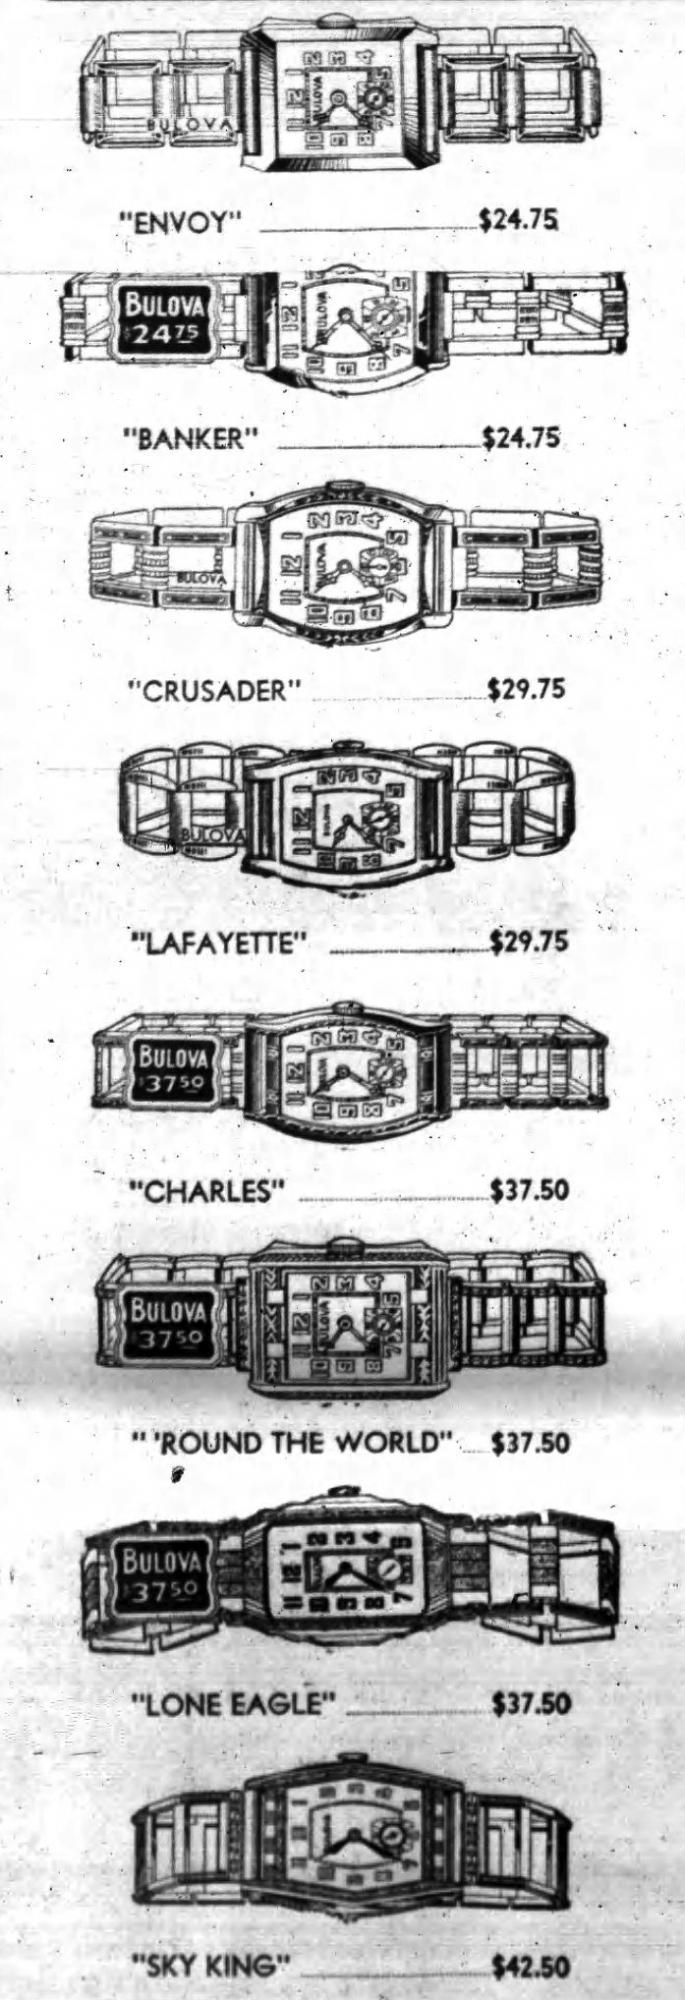 1931 Bulova watches, Envoy, Banker, Crusader, Lafayette, Charles, Round the World, Lone Eagle, Sky King